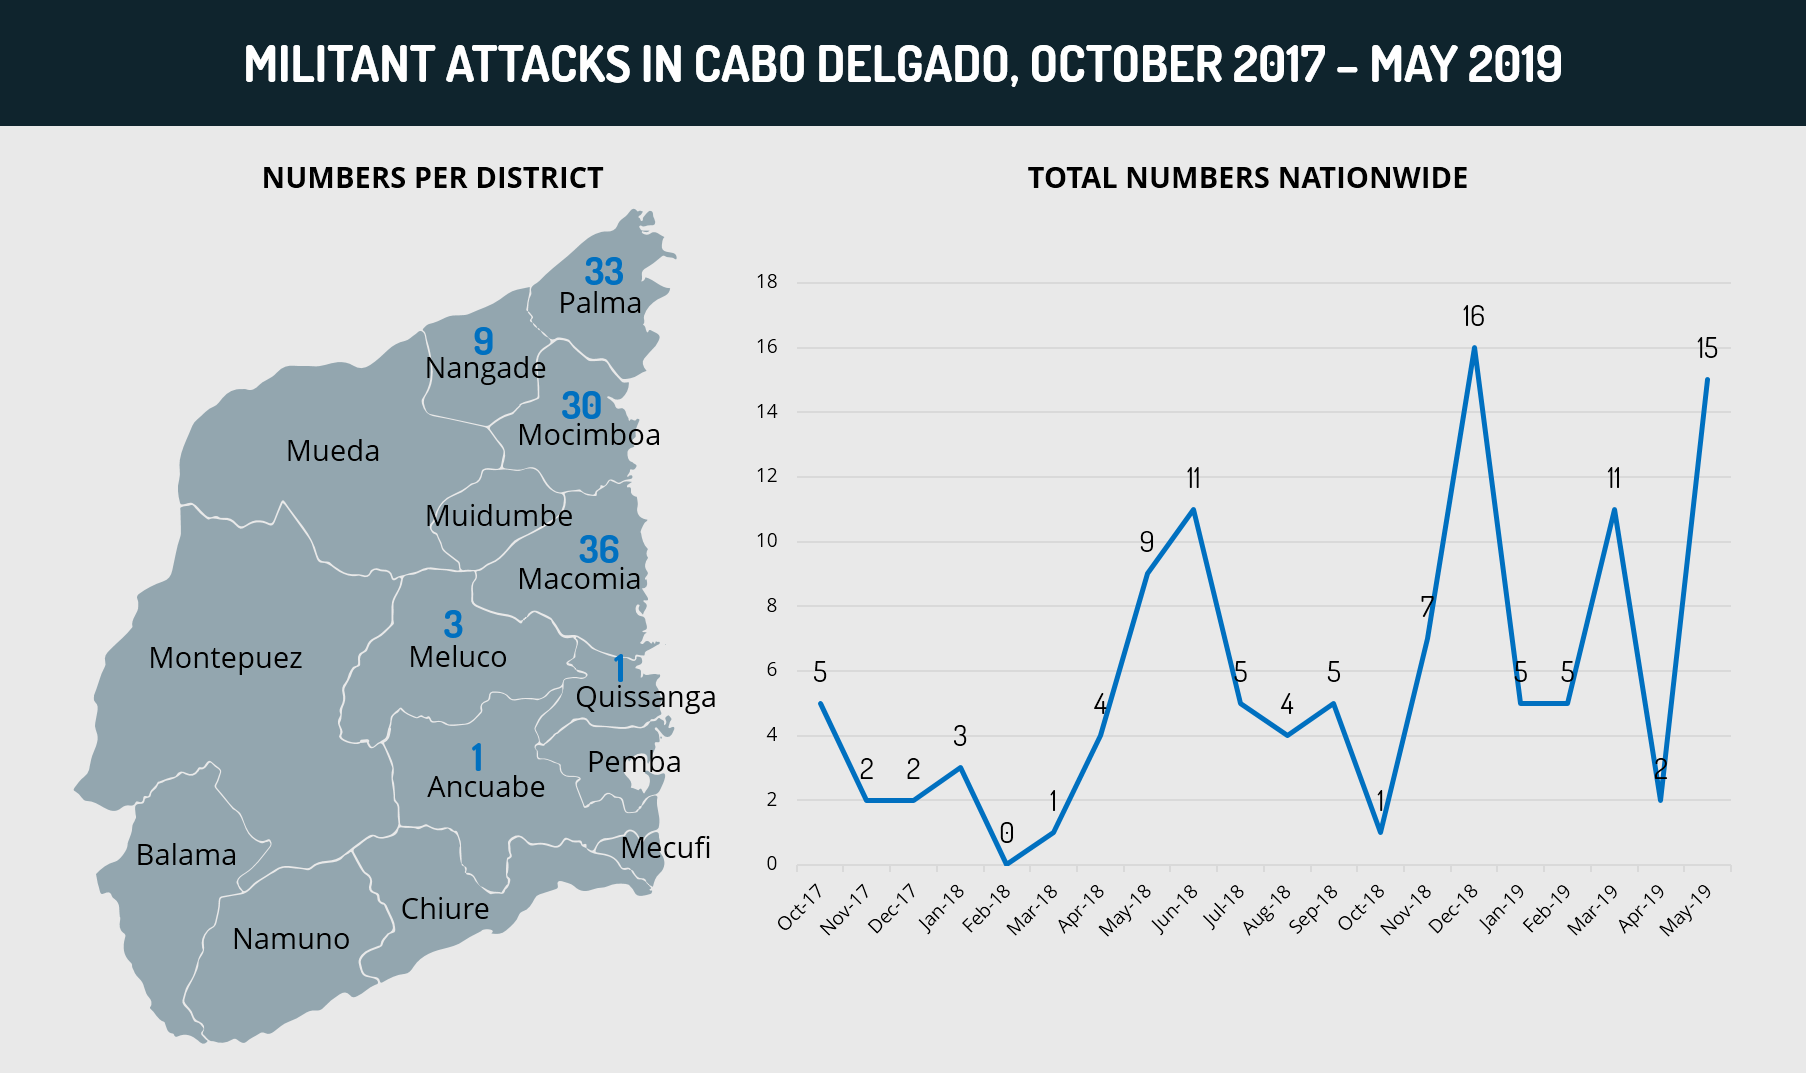 Militant Attacks in Cabo Delgado, October 2017 - May 2019